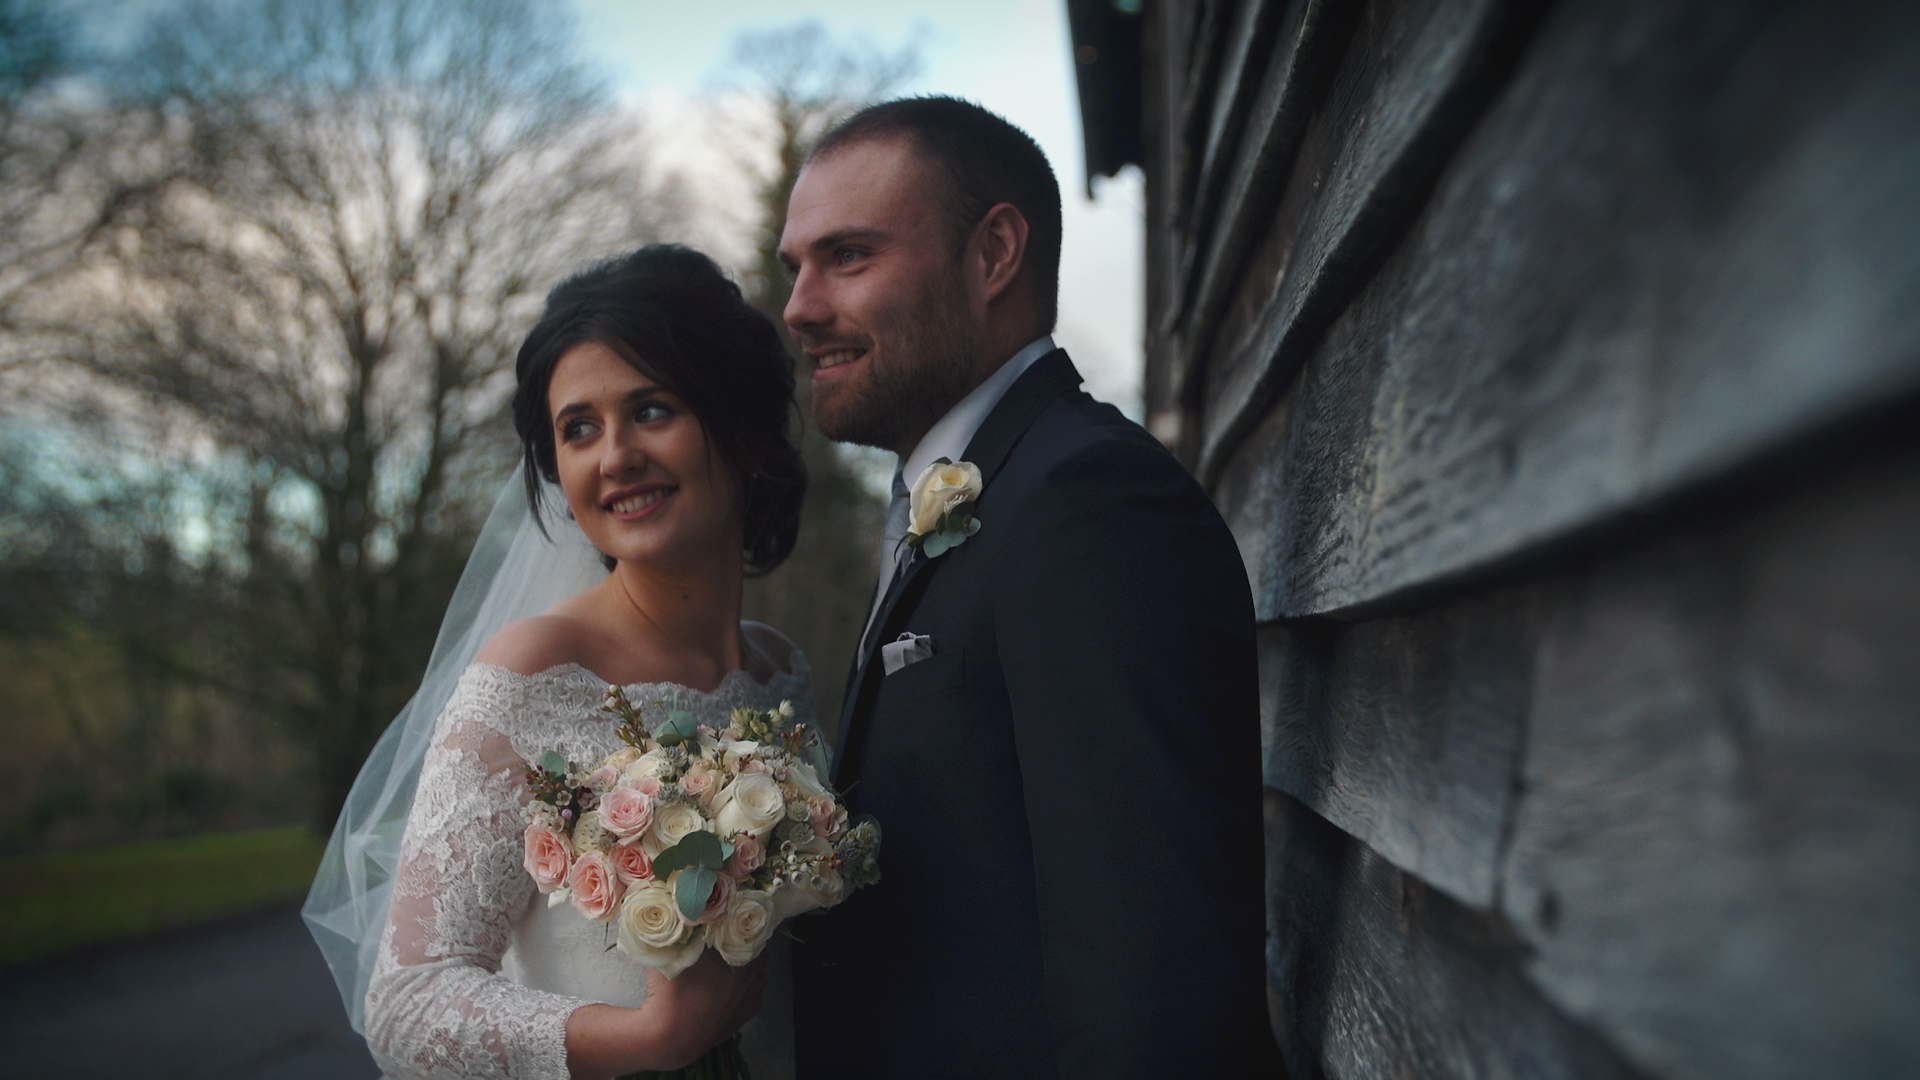 """Rebecca & Joe - """"Thank you SO MUCH for our gorgeous videos!!!!!! They arrived today and we love them so much...The highlights video in particular is absolutely beautiful and we are so pleased we asked you to capture our special day. What a lovely memory to keep. Thank you again!"""""""